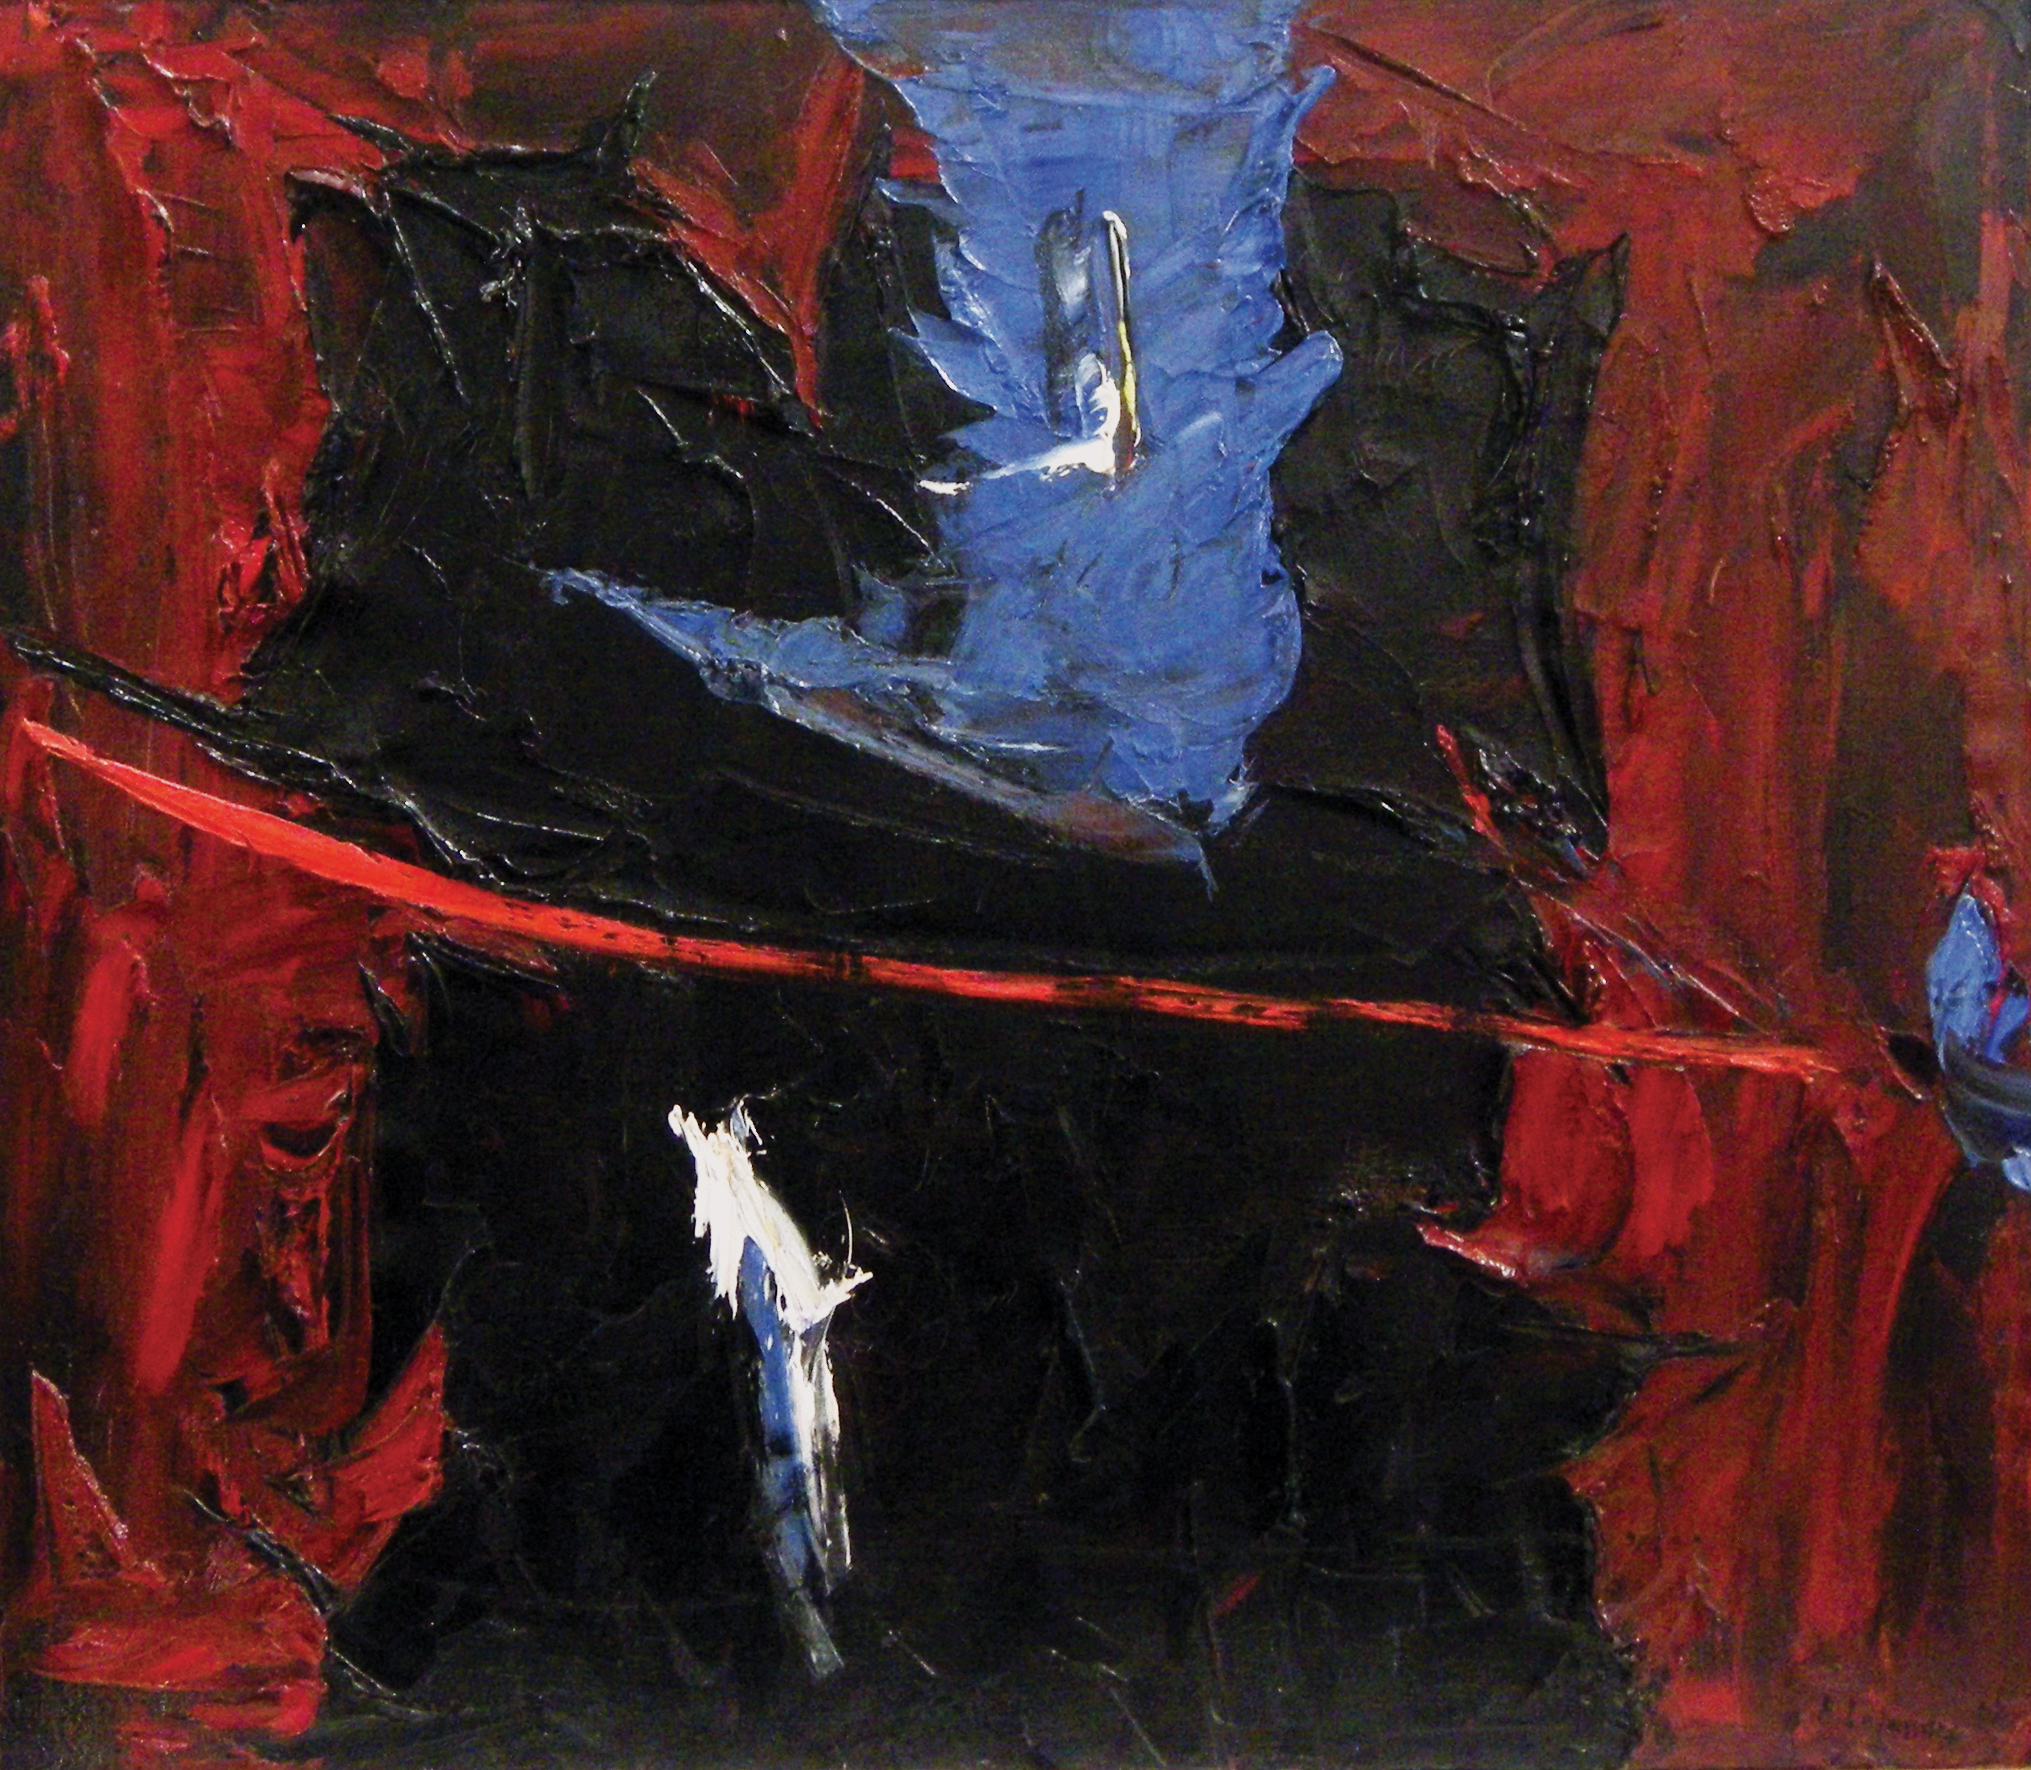 Rita Letendre (born 1928), Partage du midi ,1962, oil on canvas, 63.5 × 73.7 cm, Collection of Robert Bourgeois and Johanne Totta